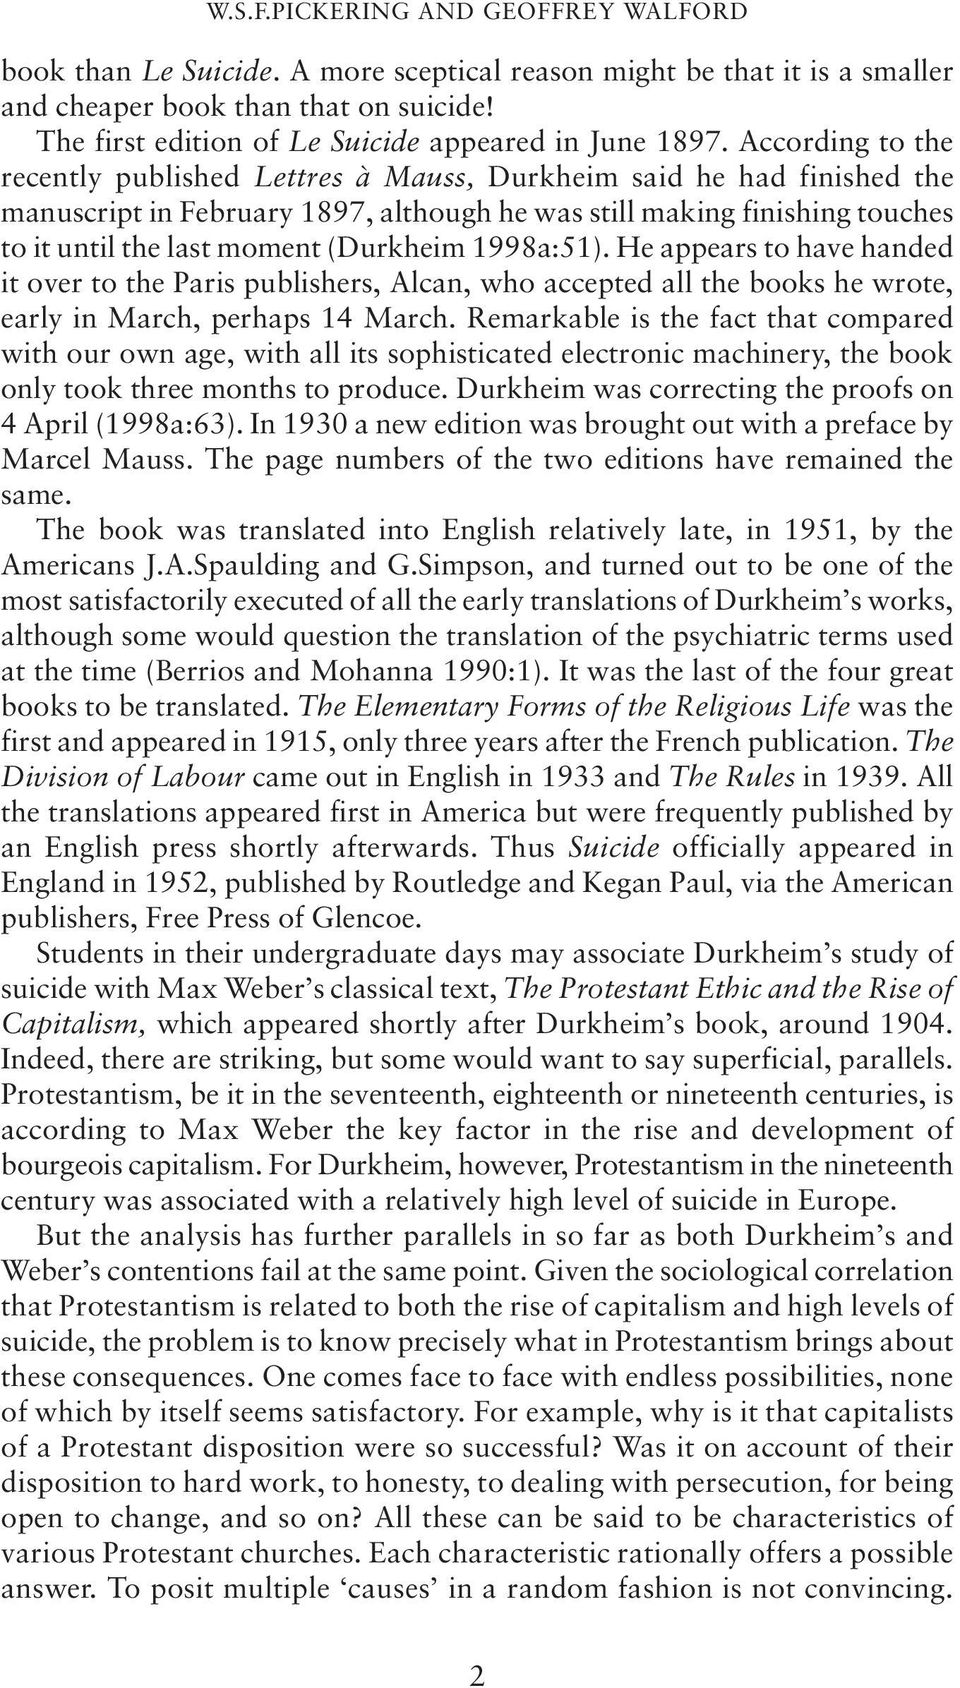 According to the recently published Lettres à Mauss, Durkheim said he had finished the manuscript in February 1897, although he was still making finishing touches to it until the last moment